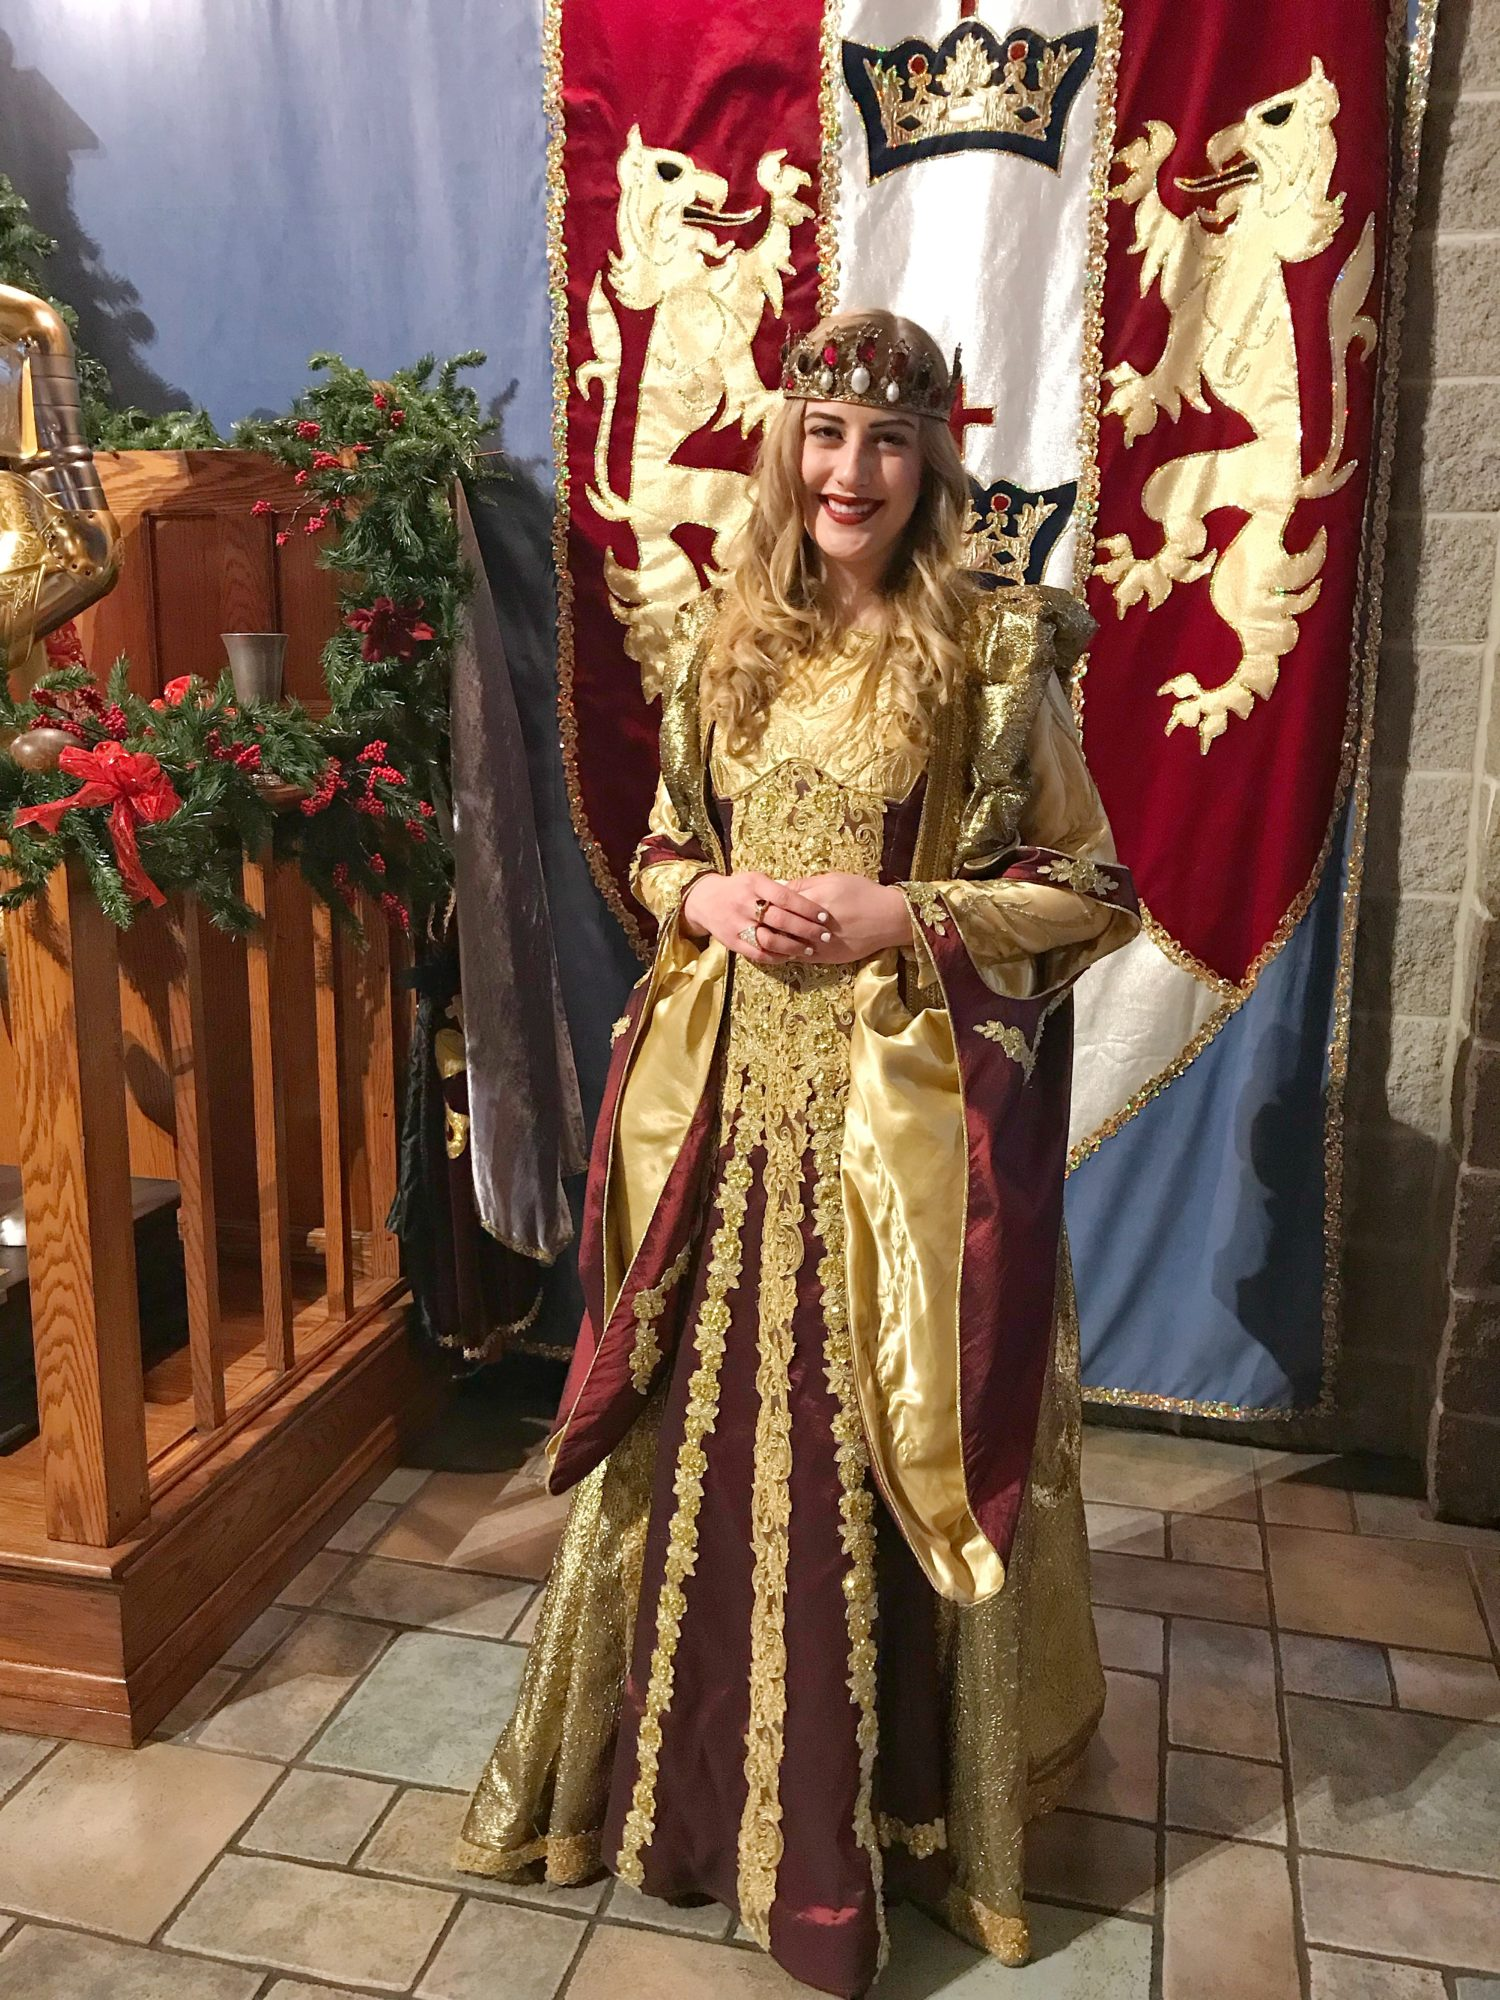 Majesty at Medieval Times